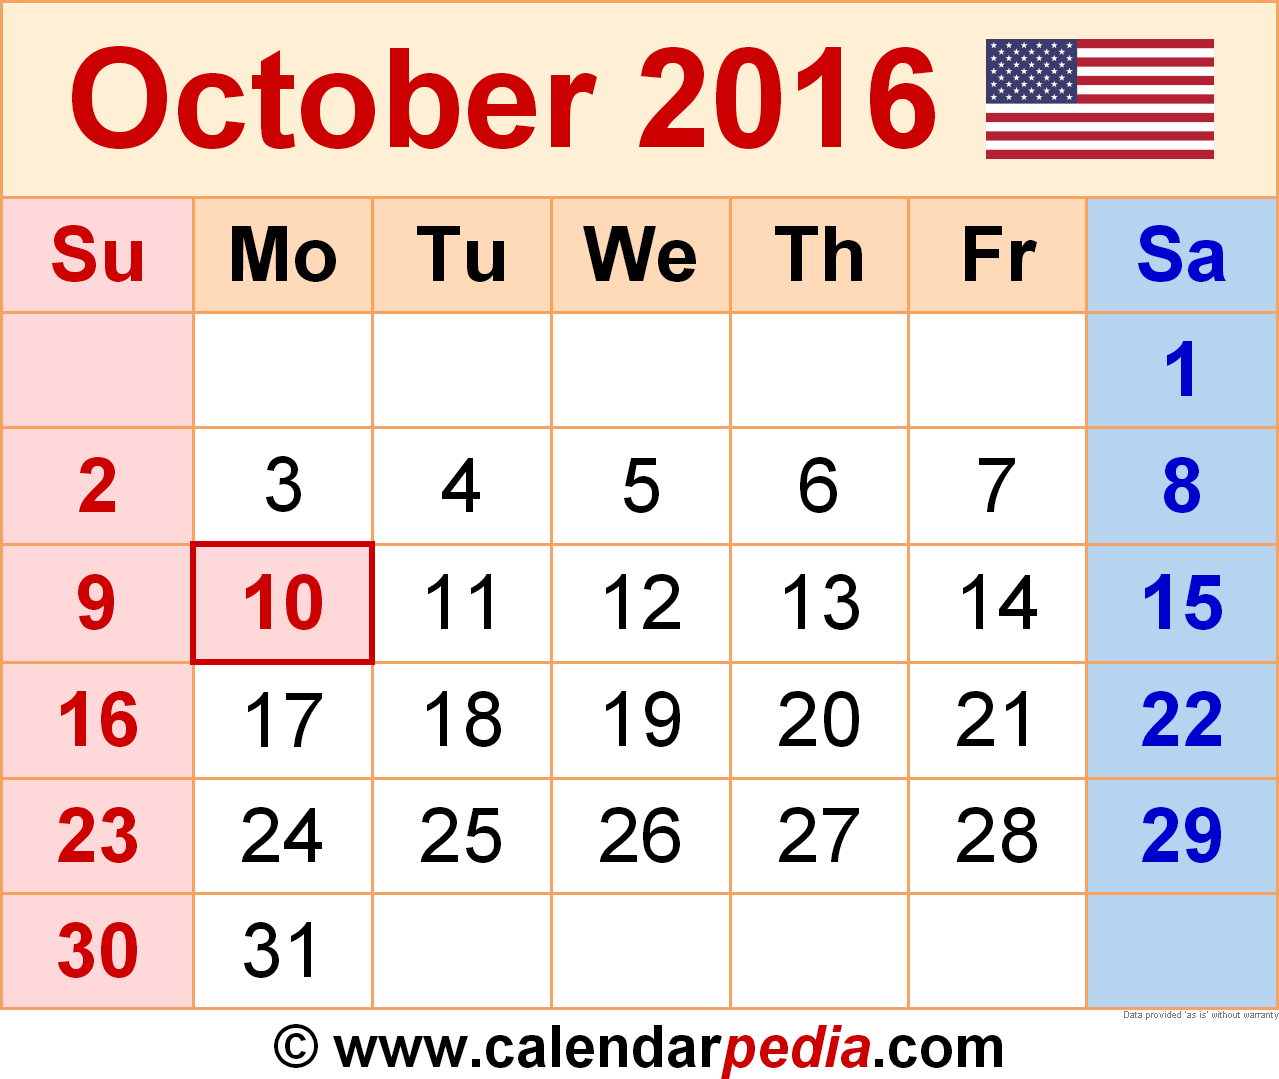 October 2016 picture royalty free download October 2016 Calendars for Word, Excel & PDF picture royalty free download